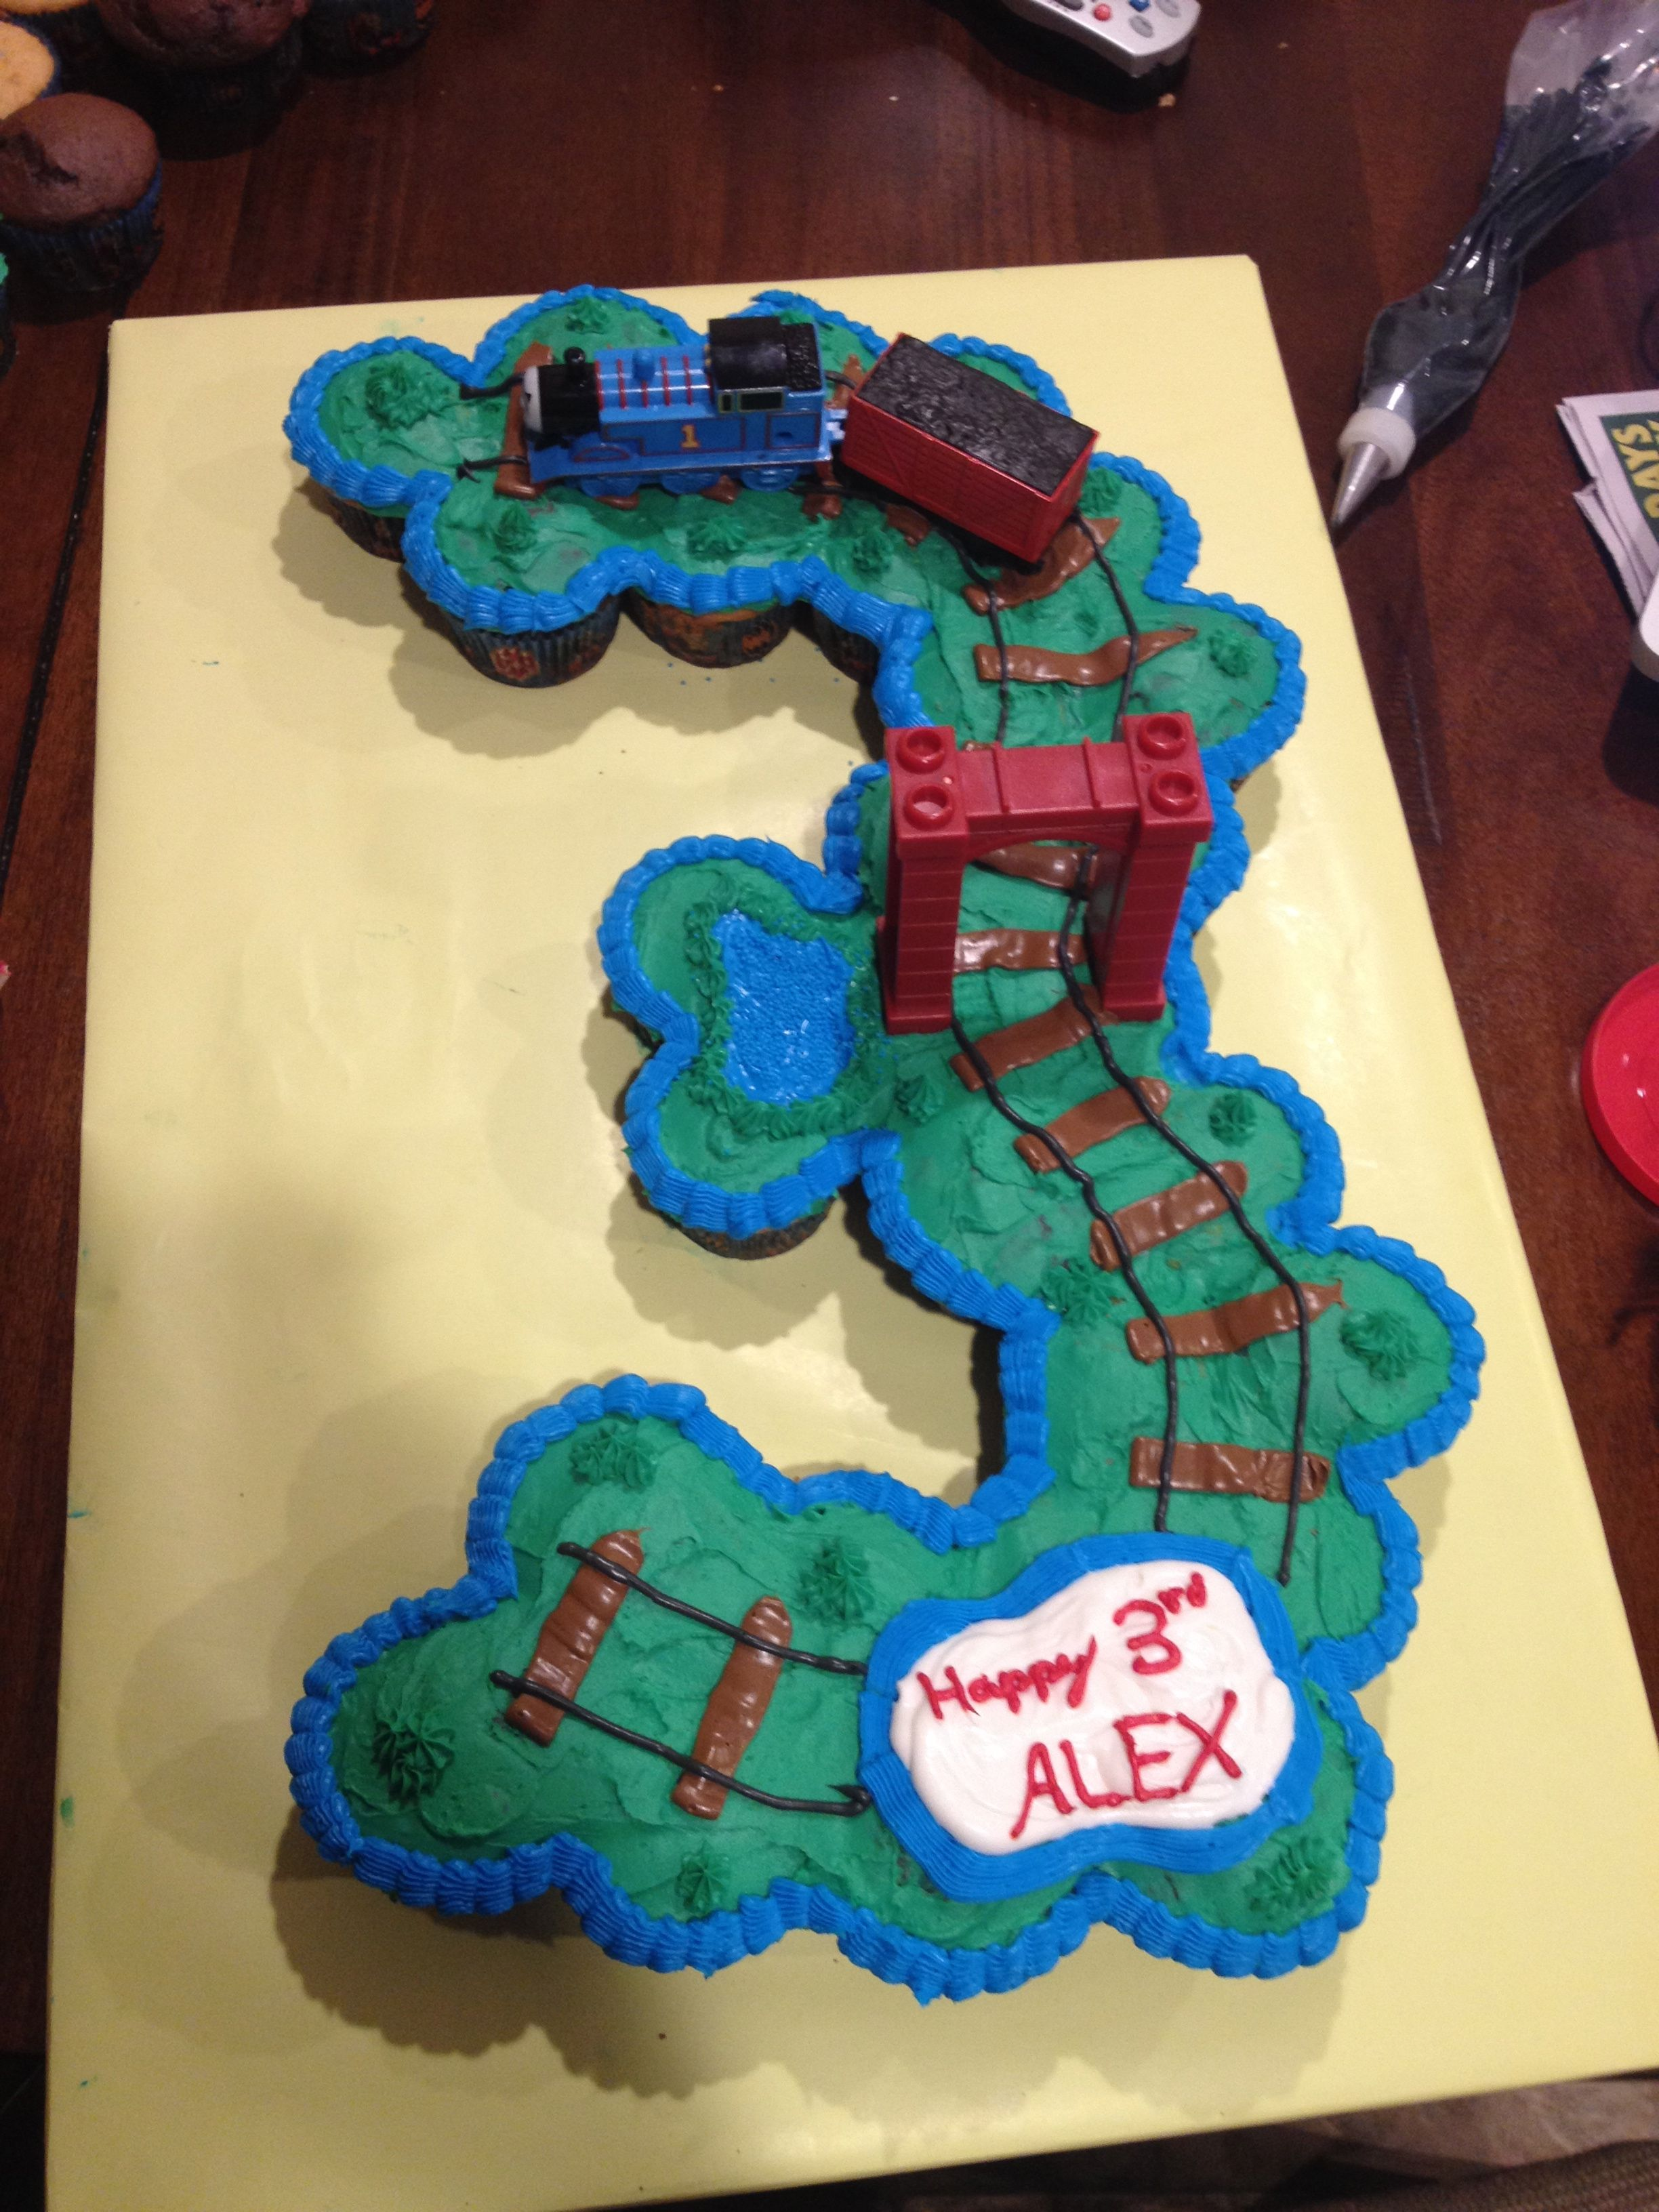 Thomas The Tank Engine 3 Cupcake Cake